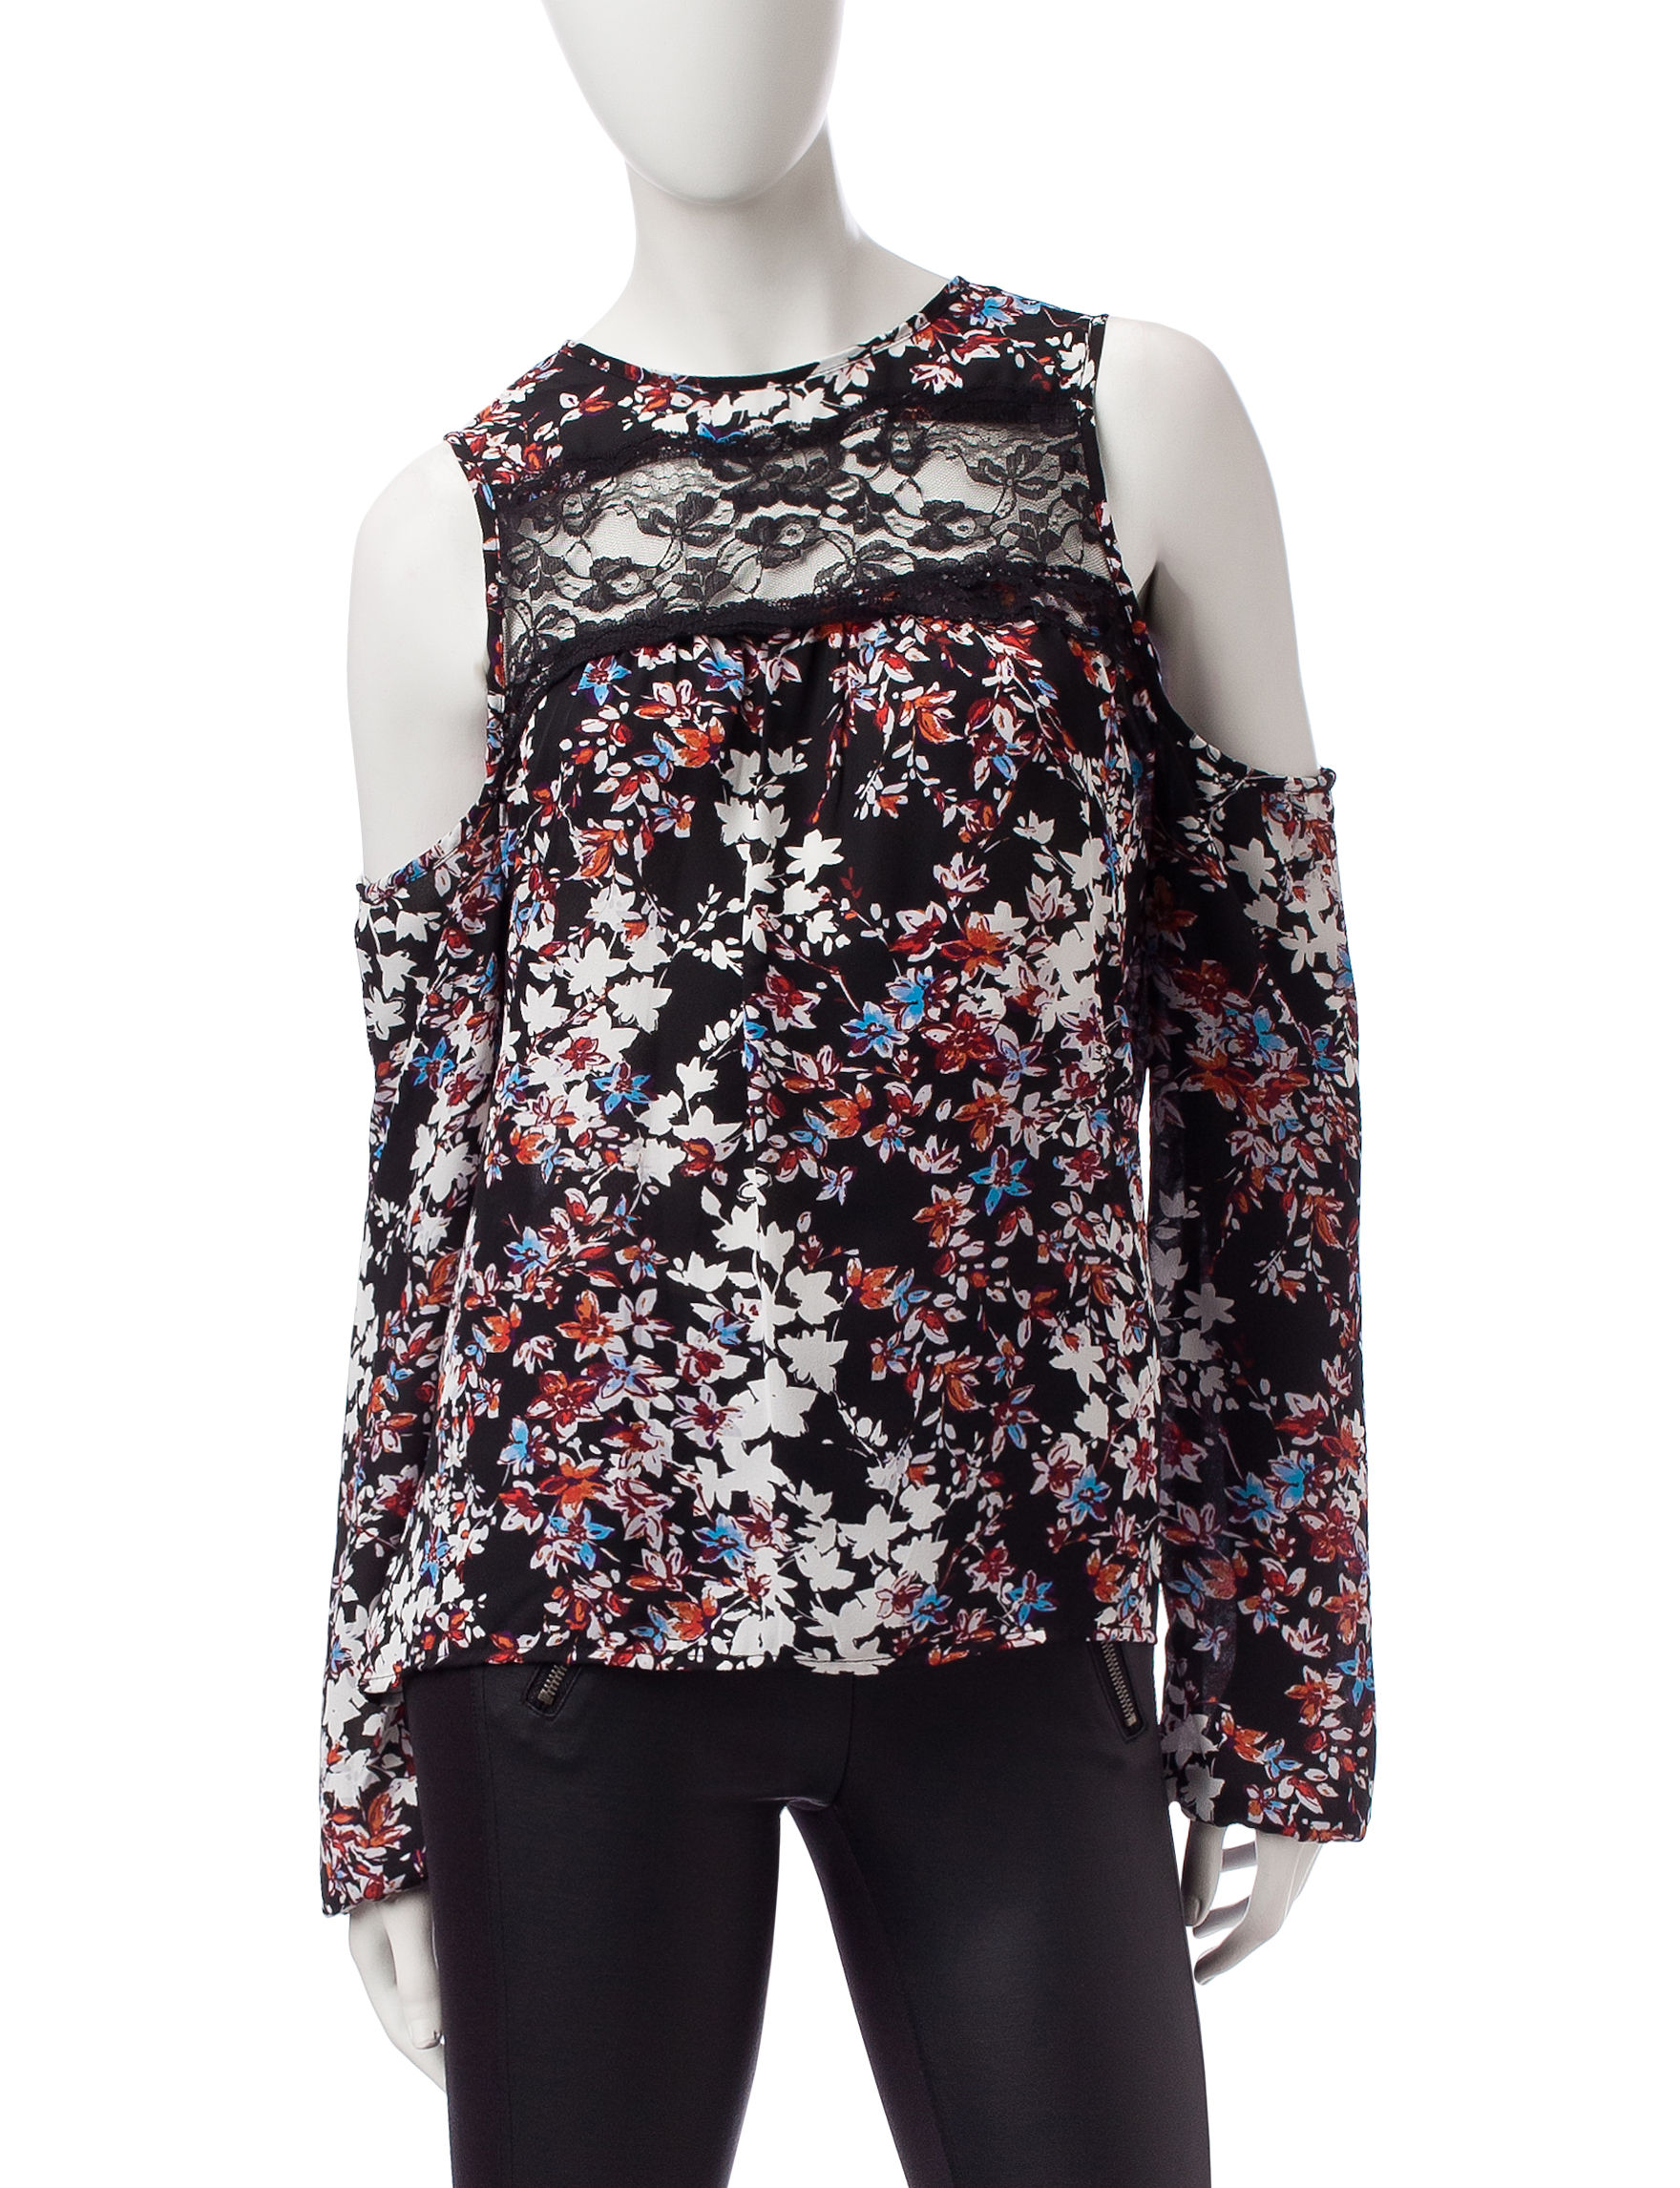 Wishful Park Black Floral Shirts & Blouses